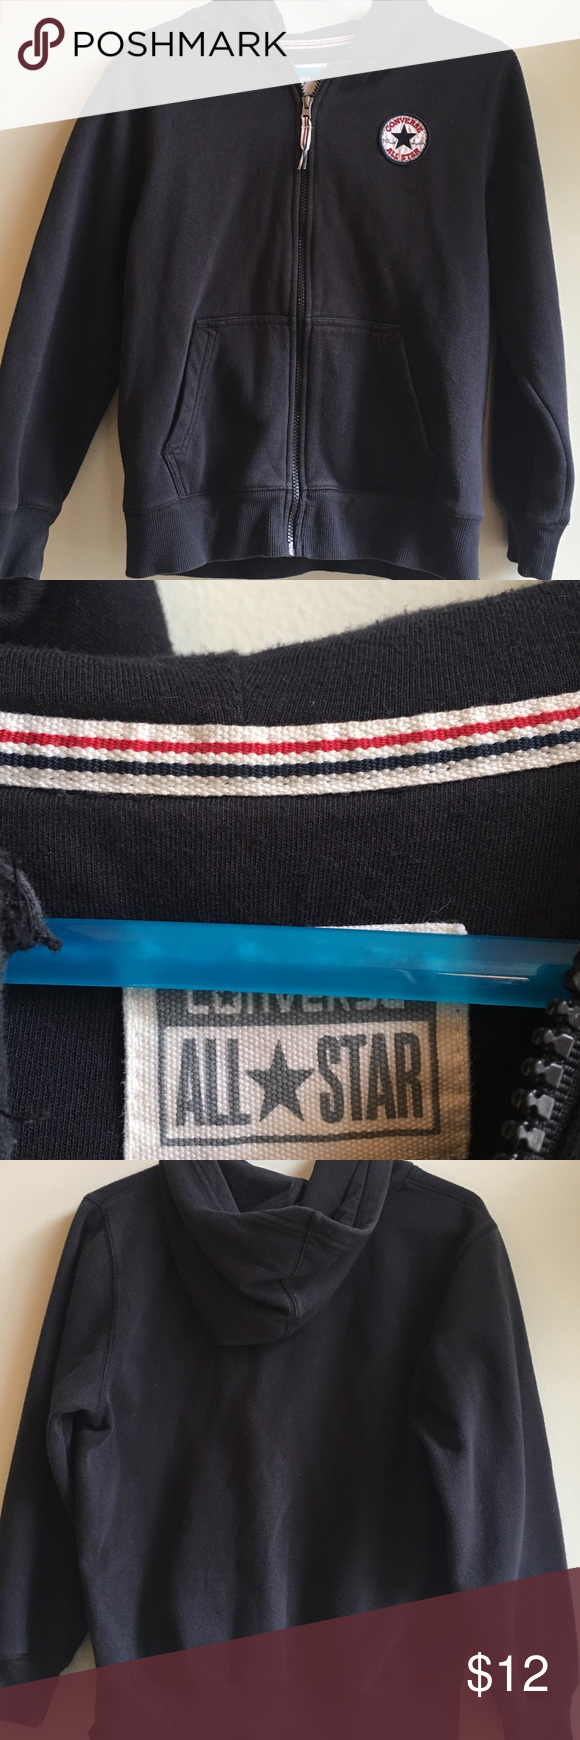 Converse Hoodie Converse Hoodie. Good Condition, Zipper is all good. Fits like a 10-12. Converse Jackets & Coats